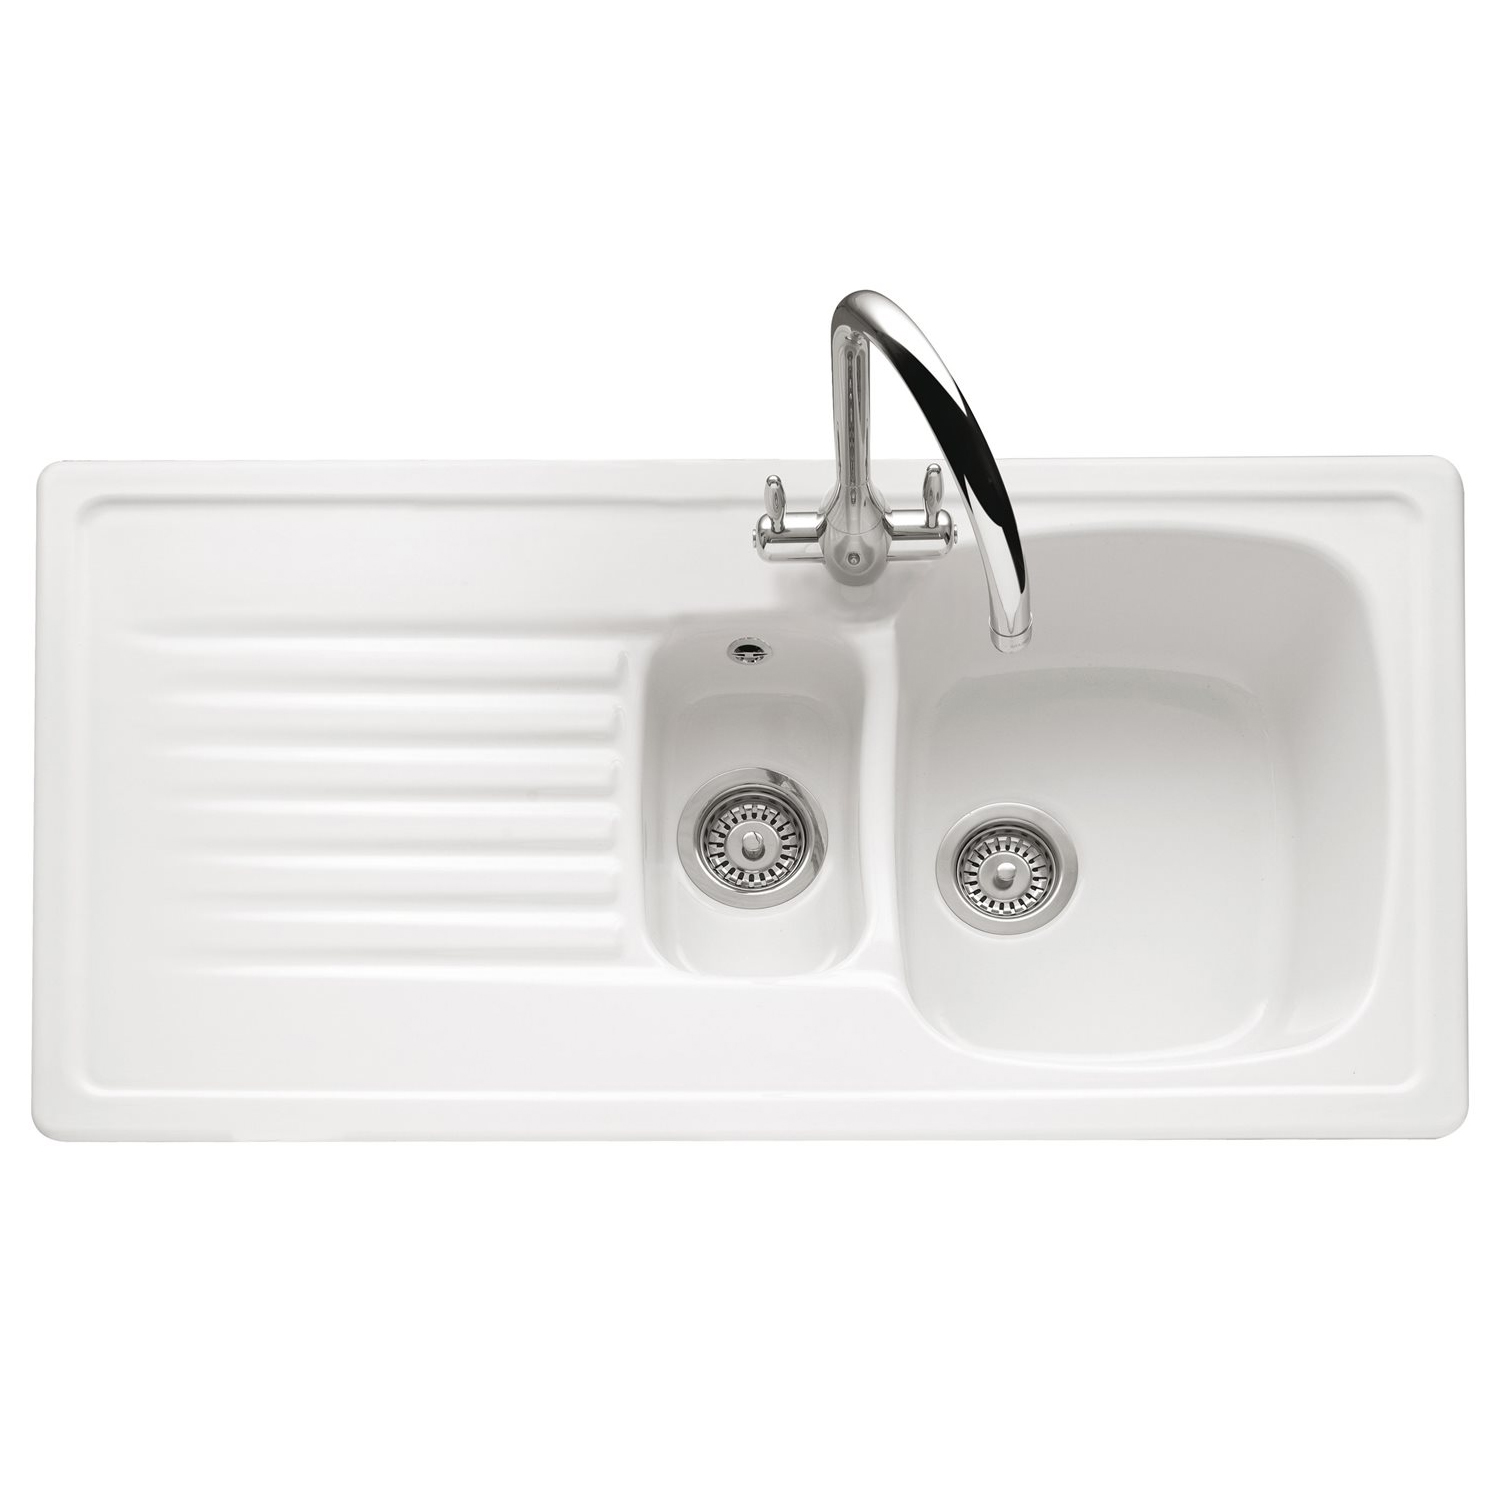 inset kitchen sink caple ashford 150 inset ceramic sink sinks taps 1870